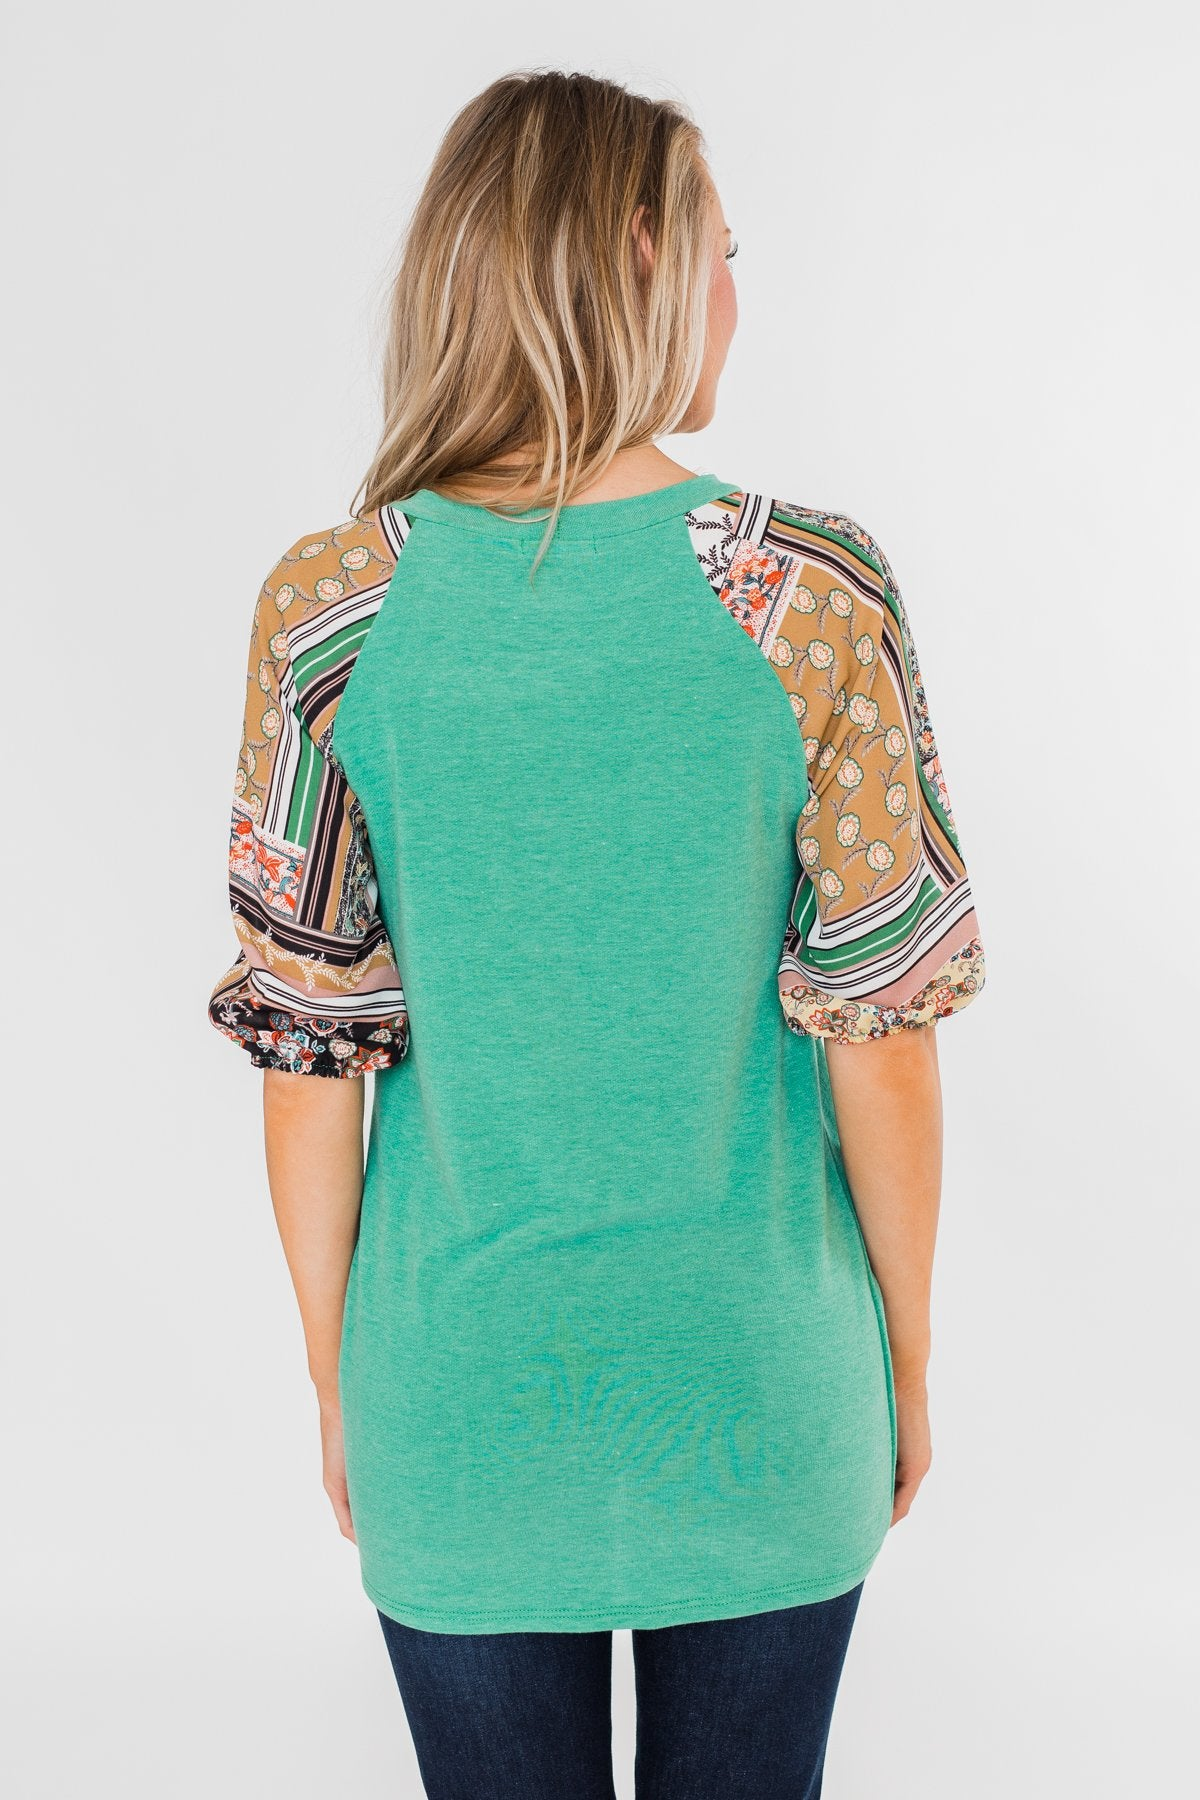 Keep Walking On Printed Sleeve Top- Jade Green